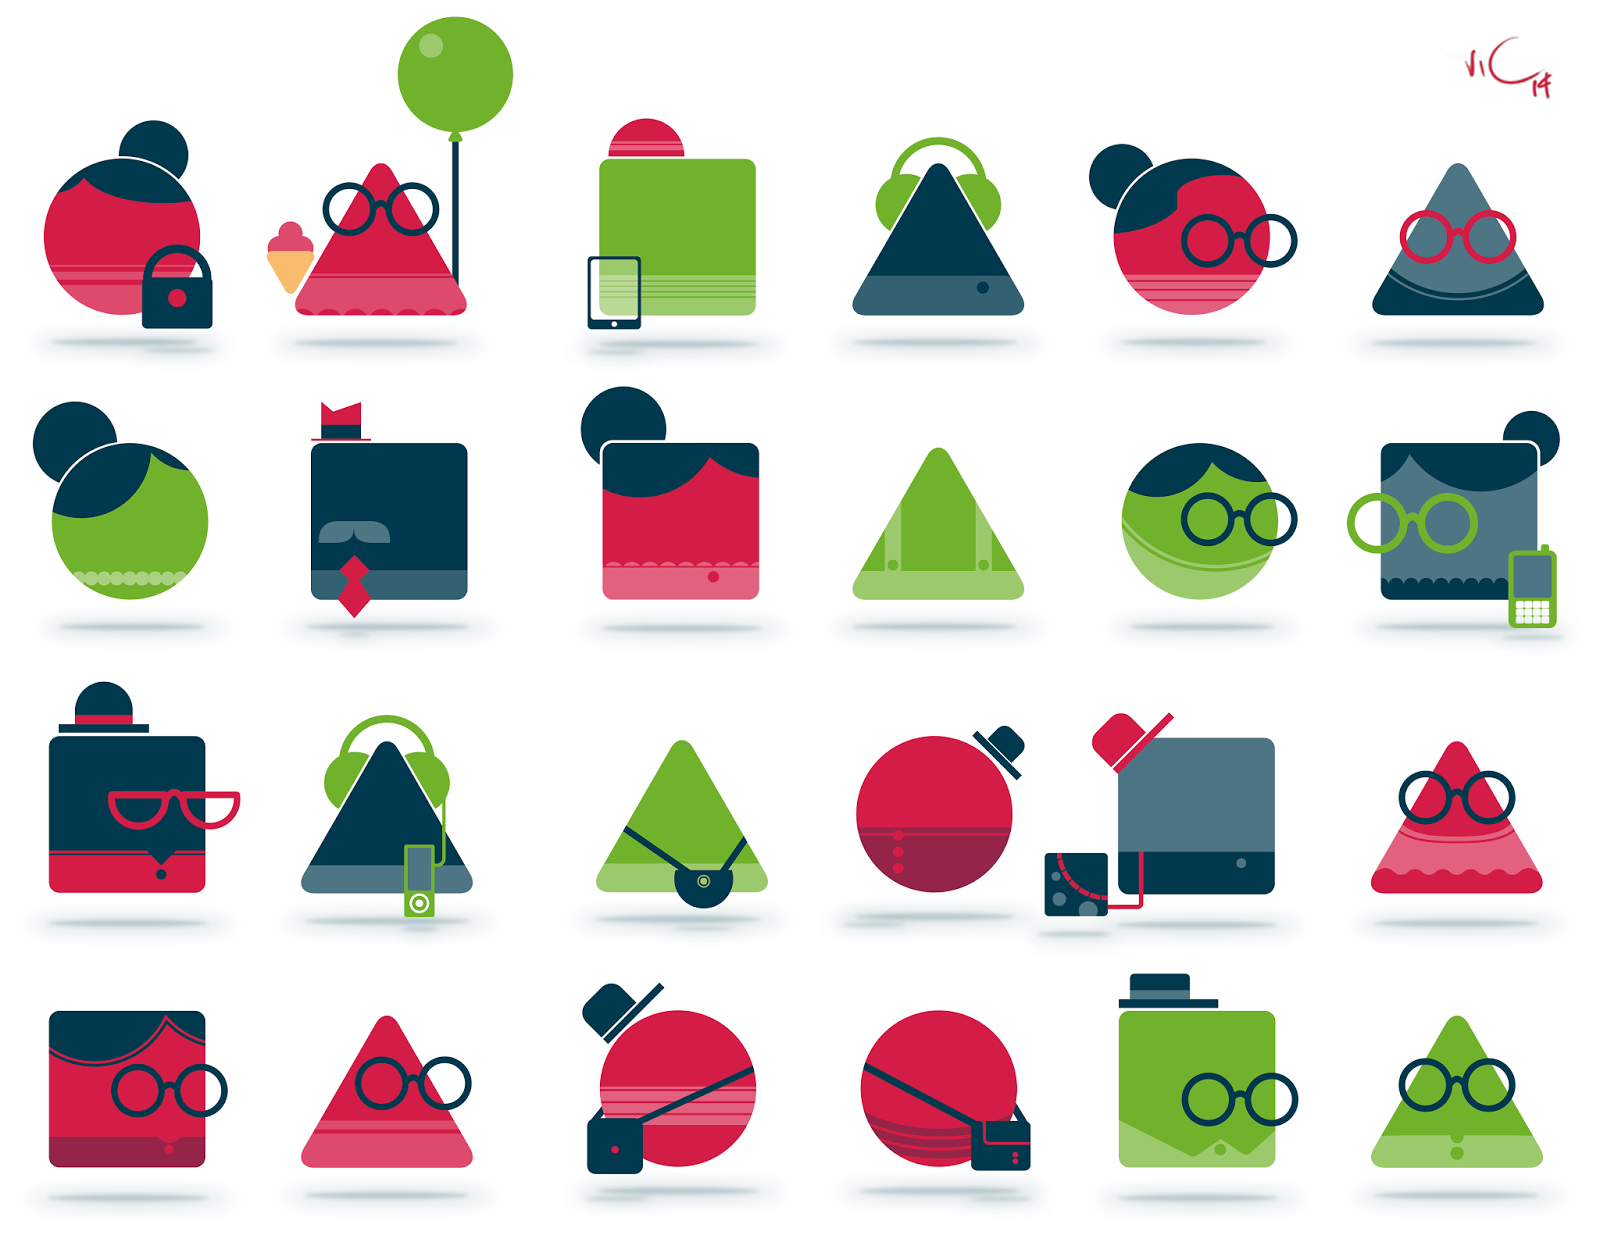 Character Design Basic Shapes : Howie simple character designs